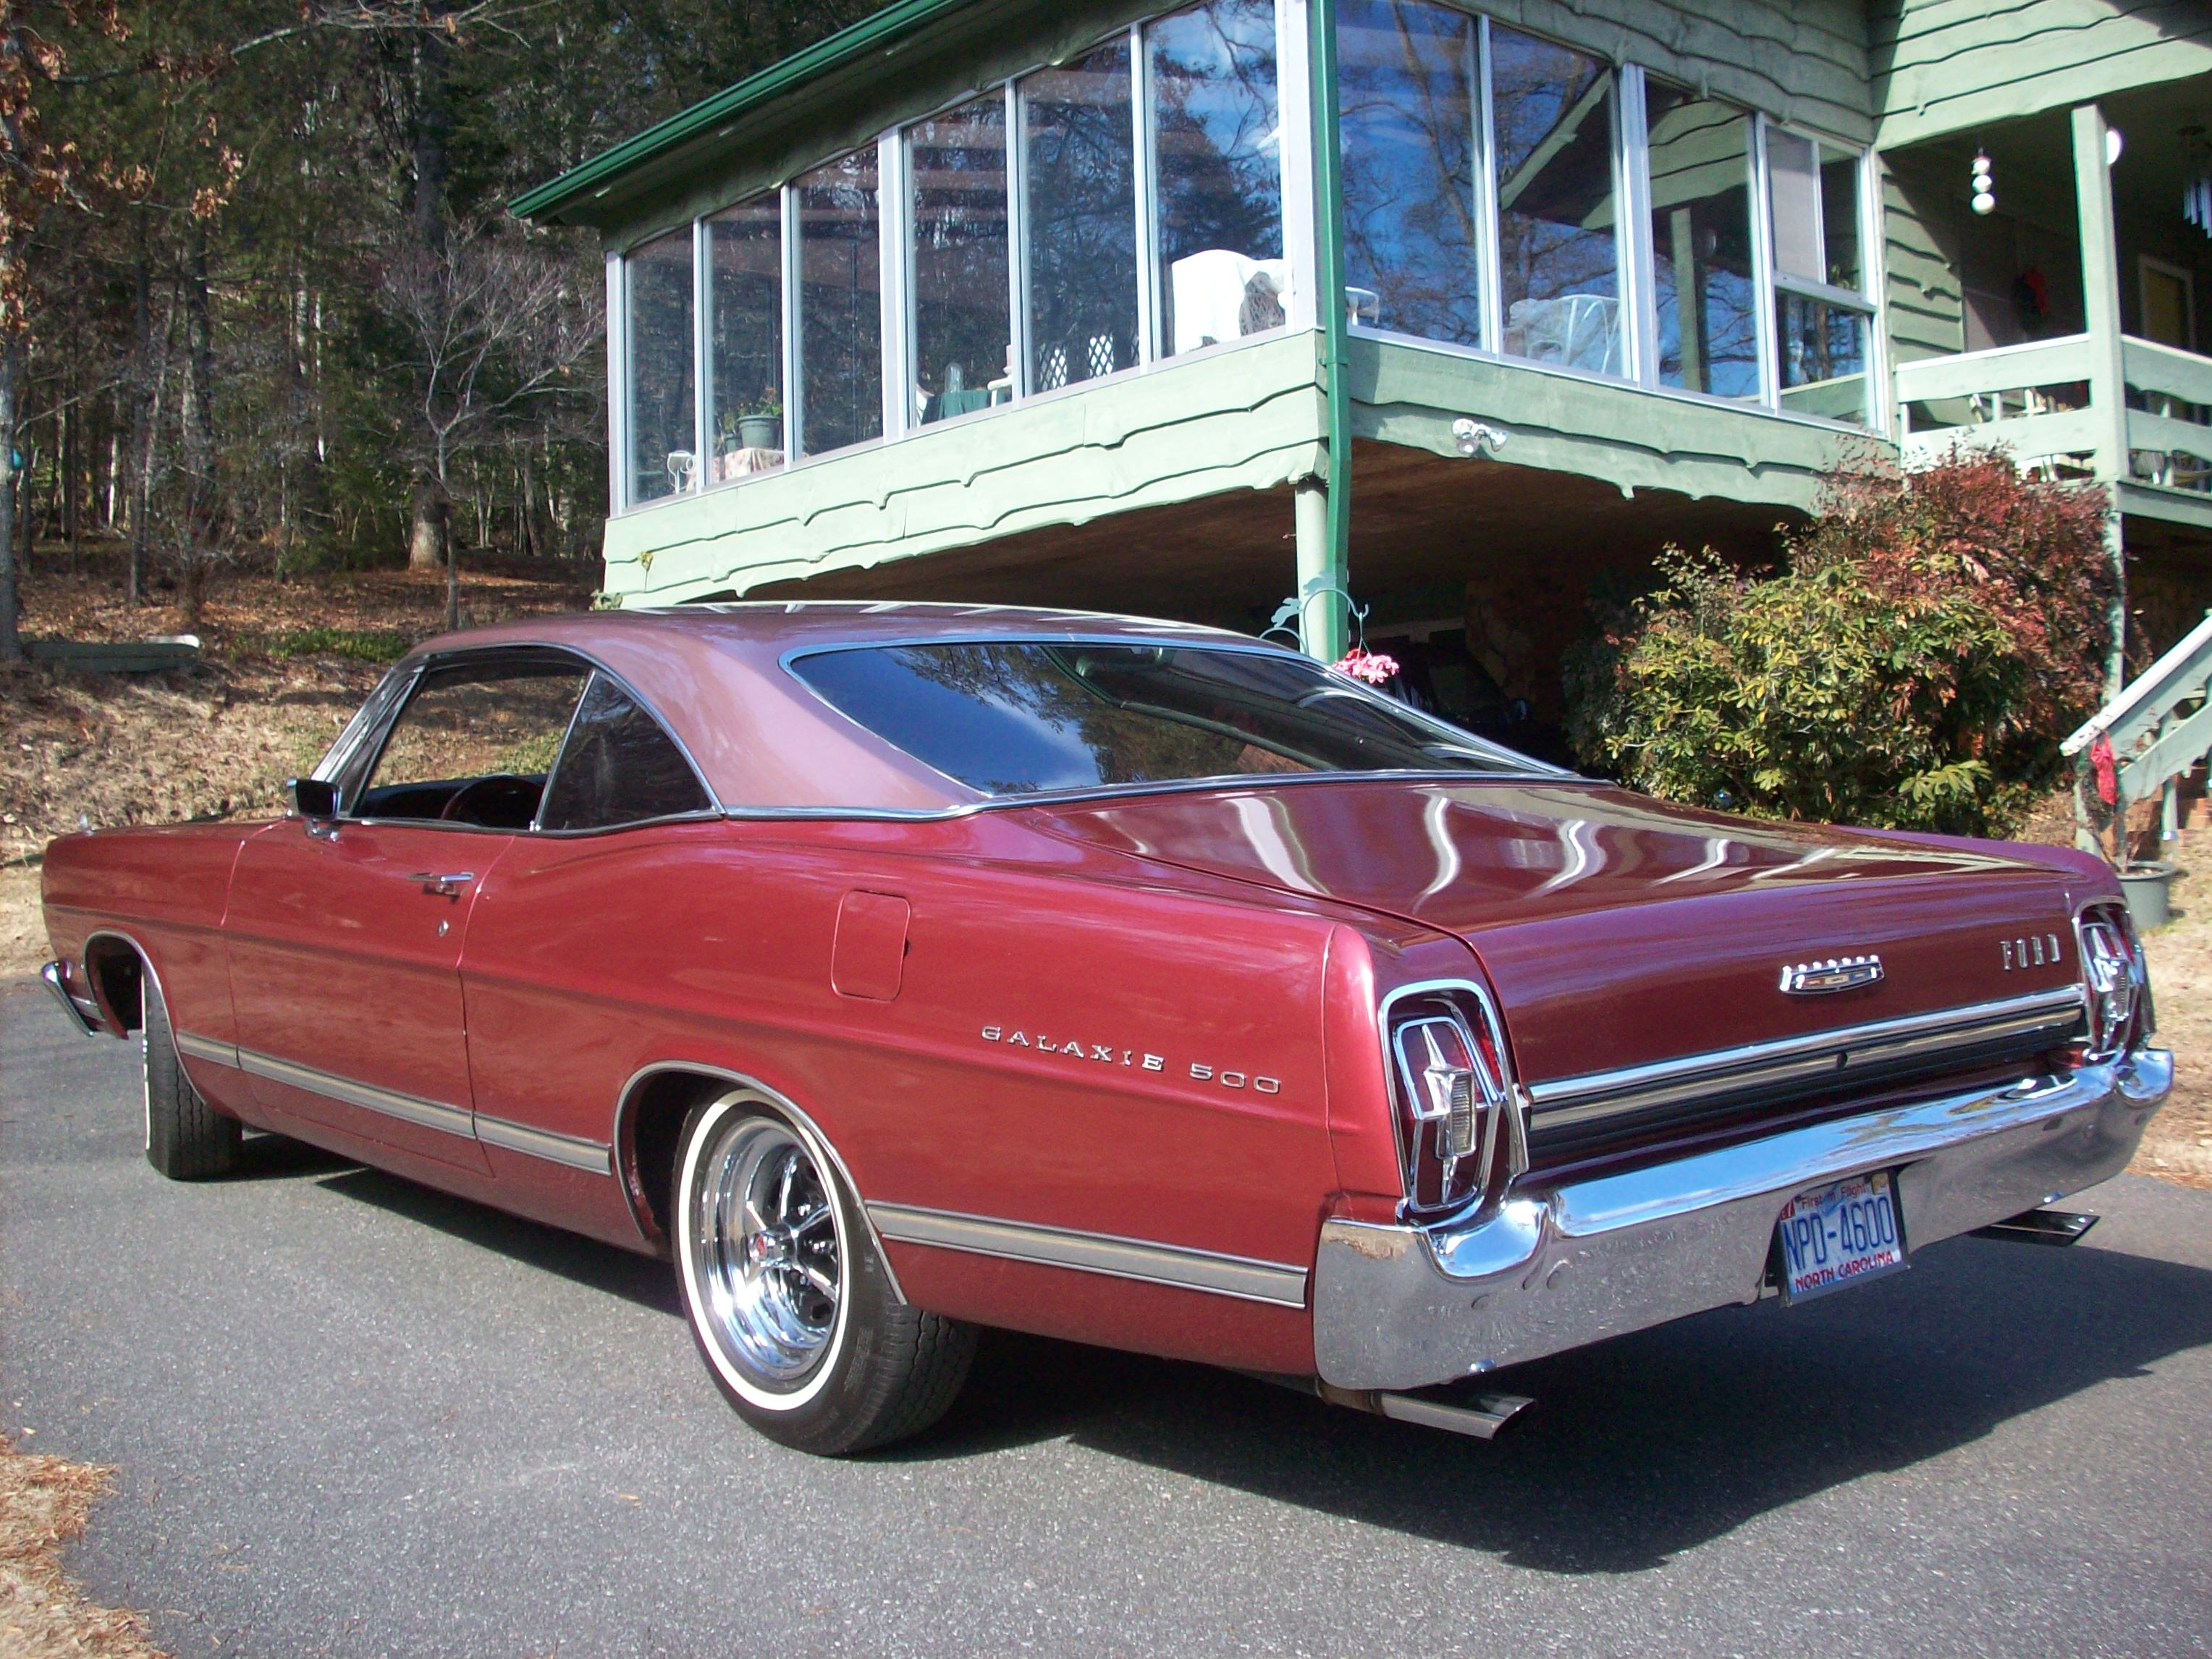 1967 Galaxie 500 2 door